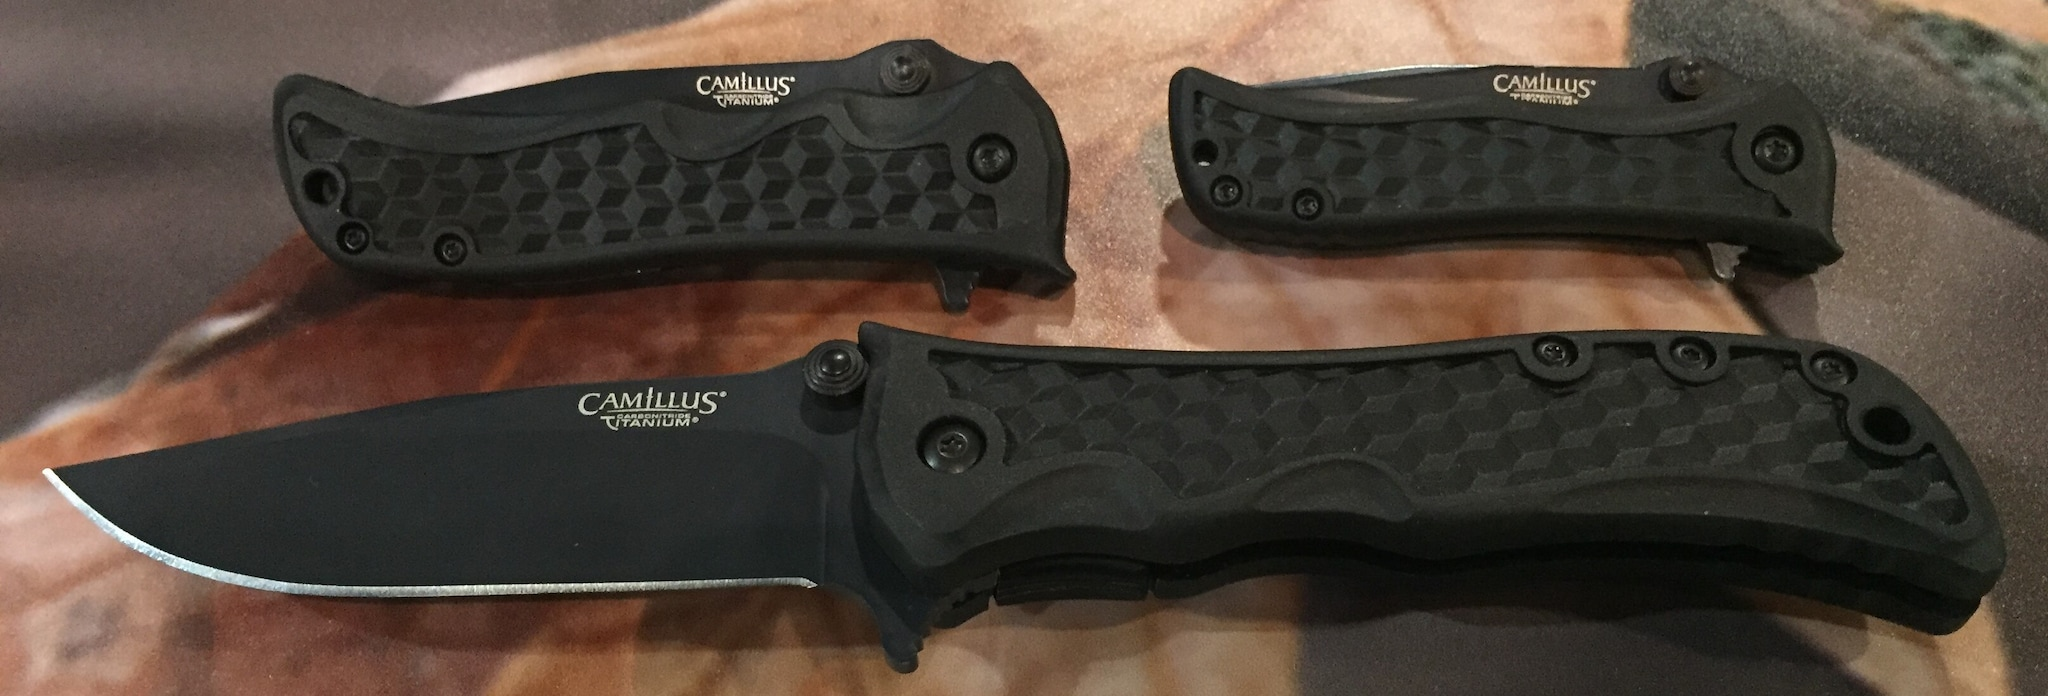 Camillus Knives' new tactical series, in three sizes with a drop point blade.